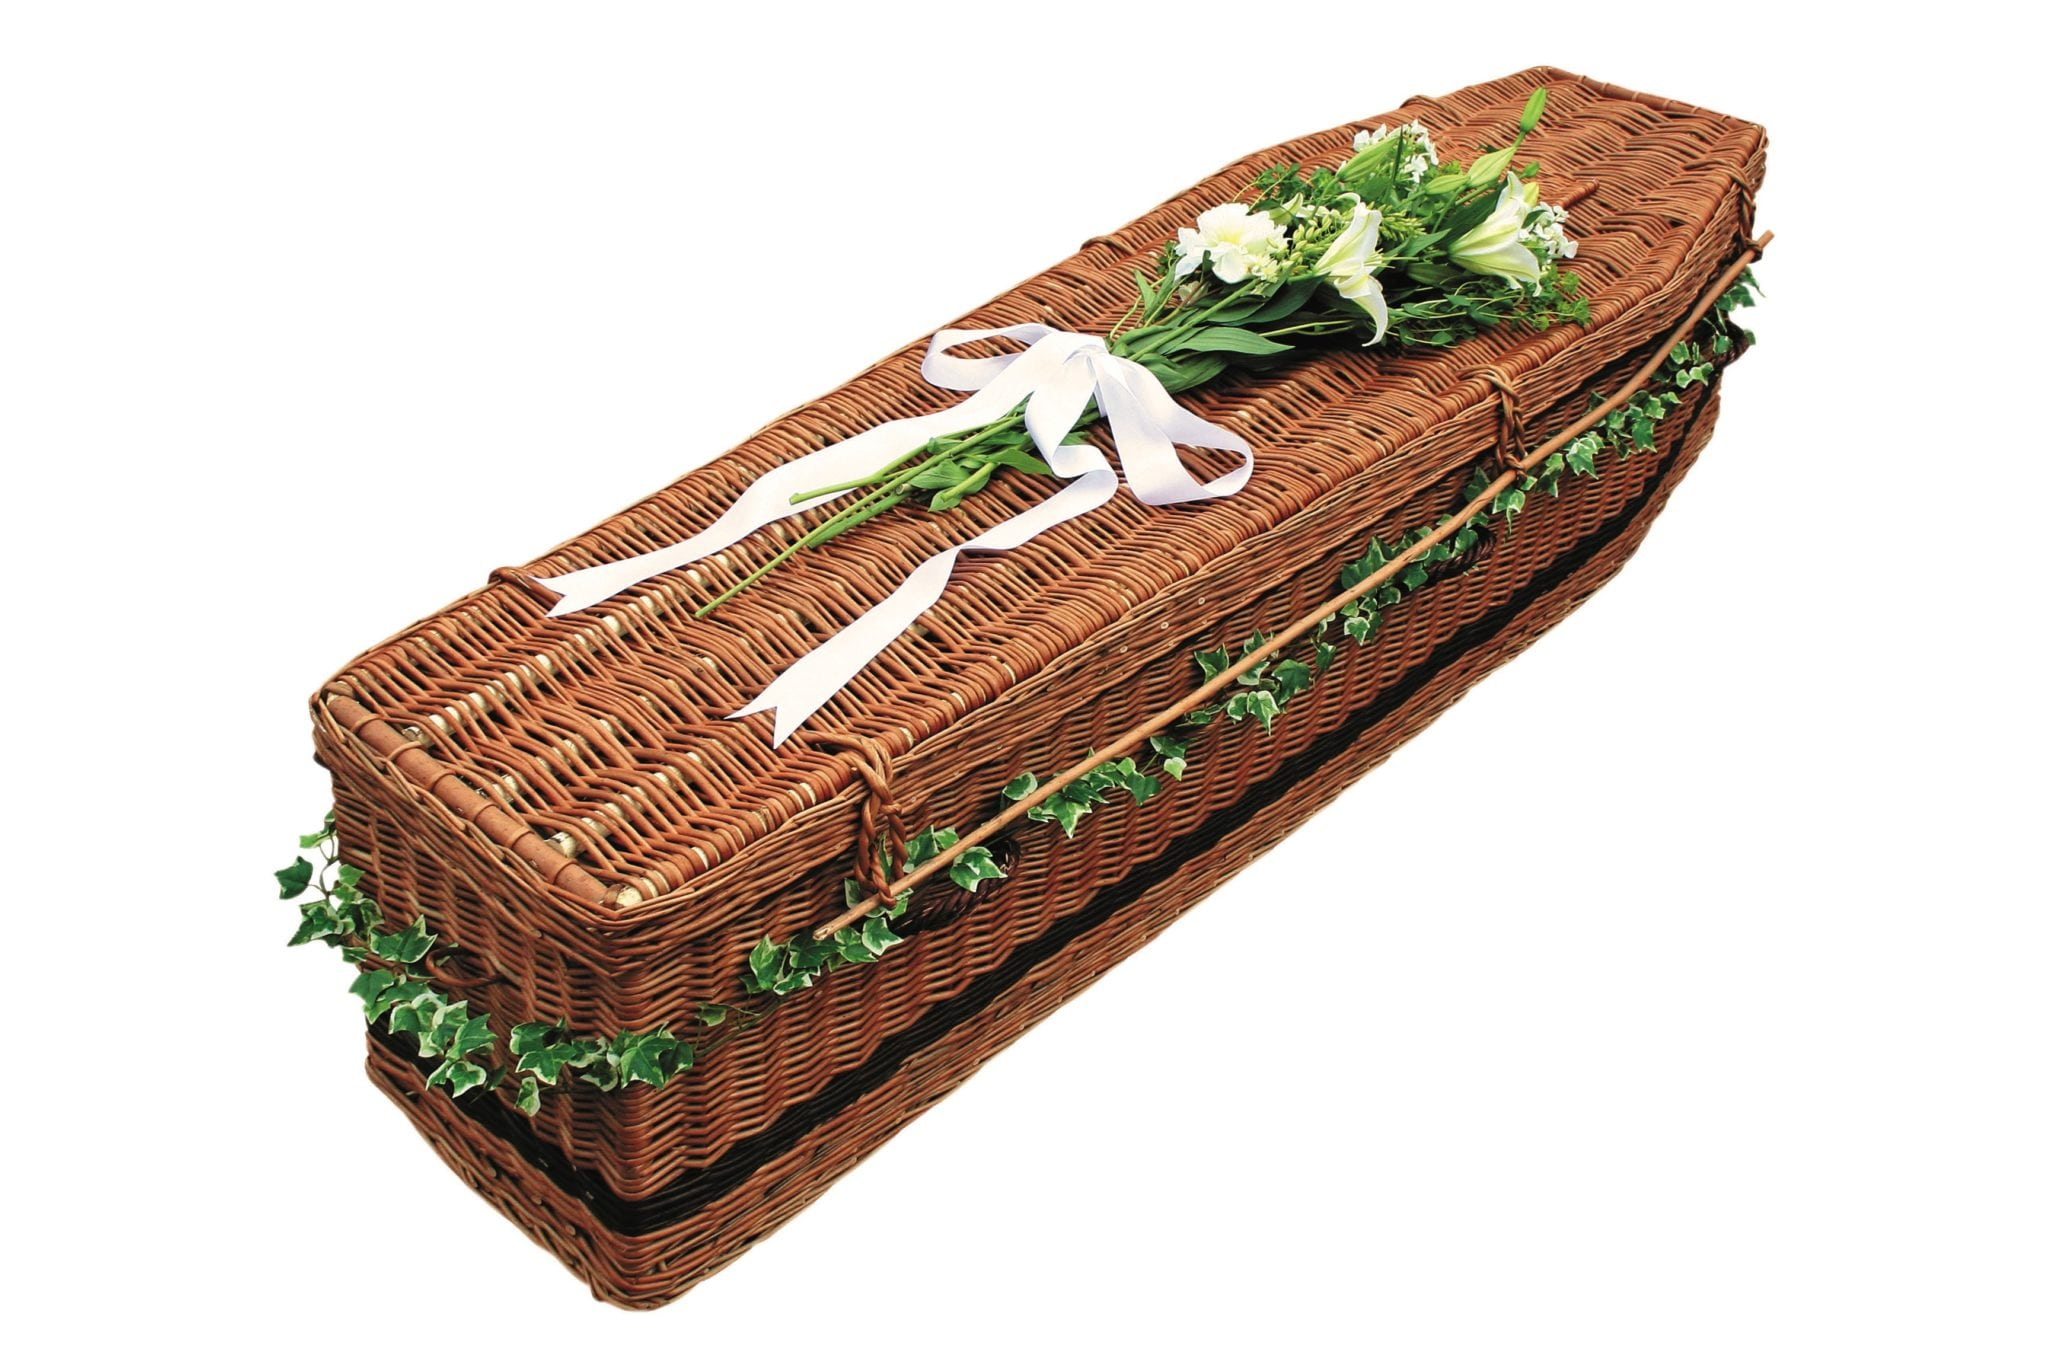 Dark wicker coffin with flowers on top